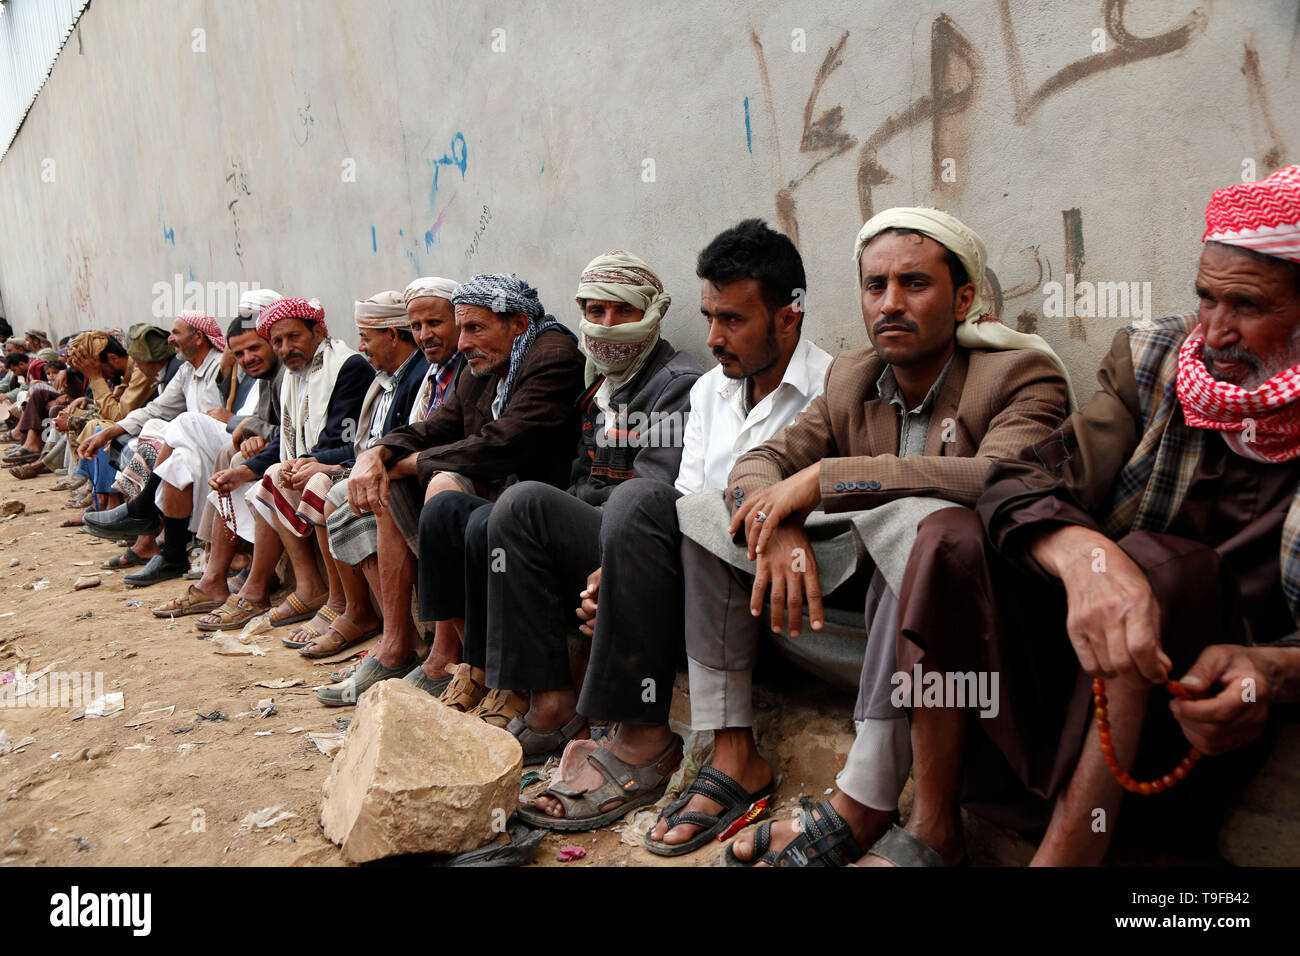 Sanaa, Yemen. 18th May, 2019. Yemenis wait to get food from a charity foundation in Sanaa, Yemen, on May 18, 2019. Ten million Yemenis are still reliant on emergency food assistance to survive, UN Under-Secretary-General for Humanitarian Affairs and Emergency Relief Coordinator Mark Lowcock told the Security Council on May 15. Credit: Mohammed Mohammed/Xinhua/Alamy Live News Credit: Xinhua/Alamy Live News - Stock Image